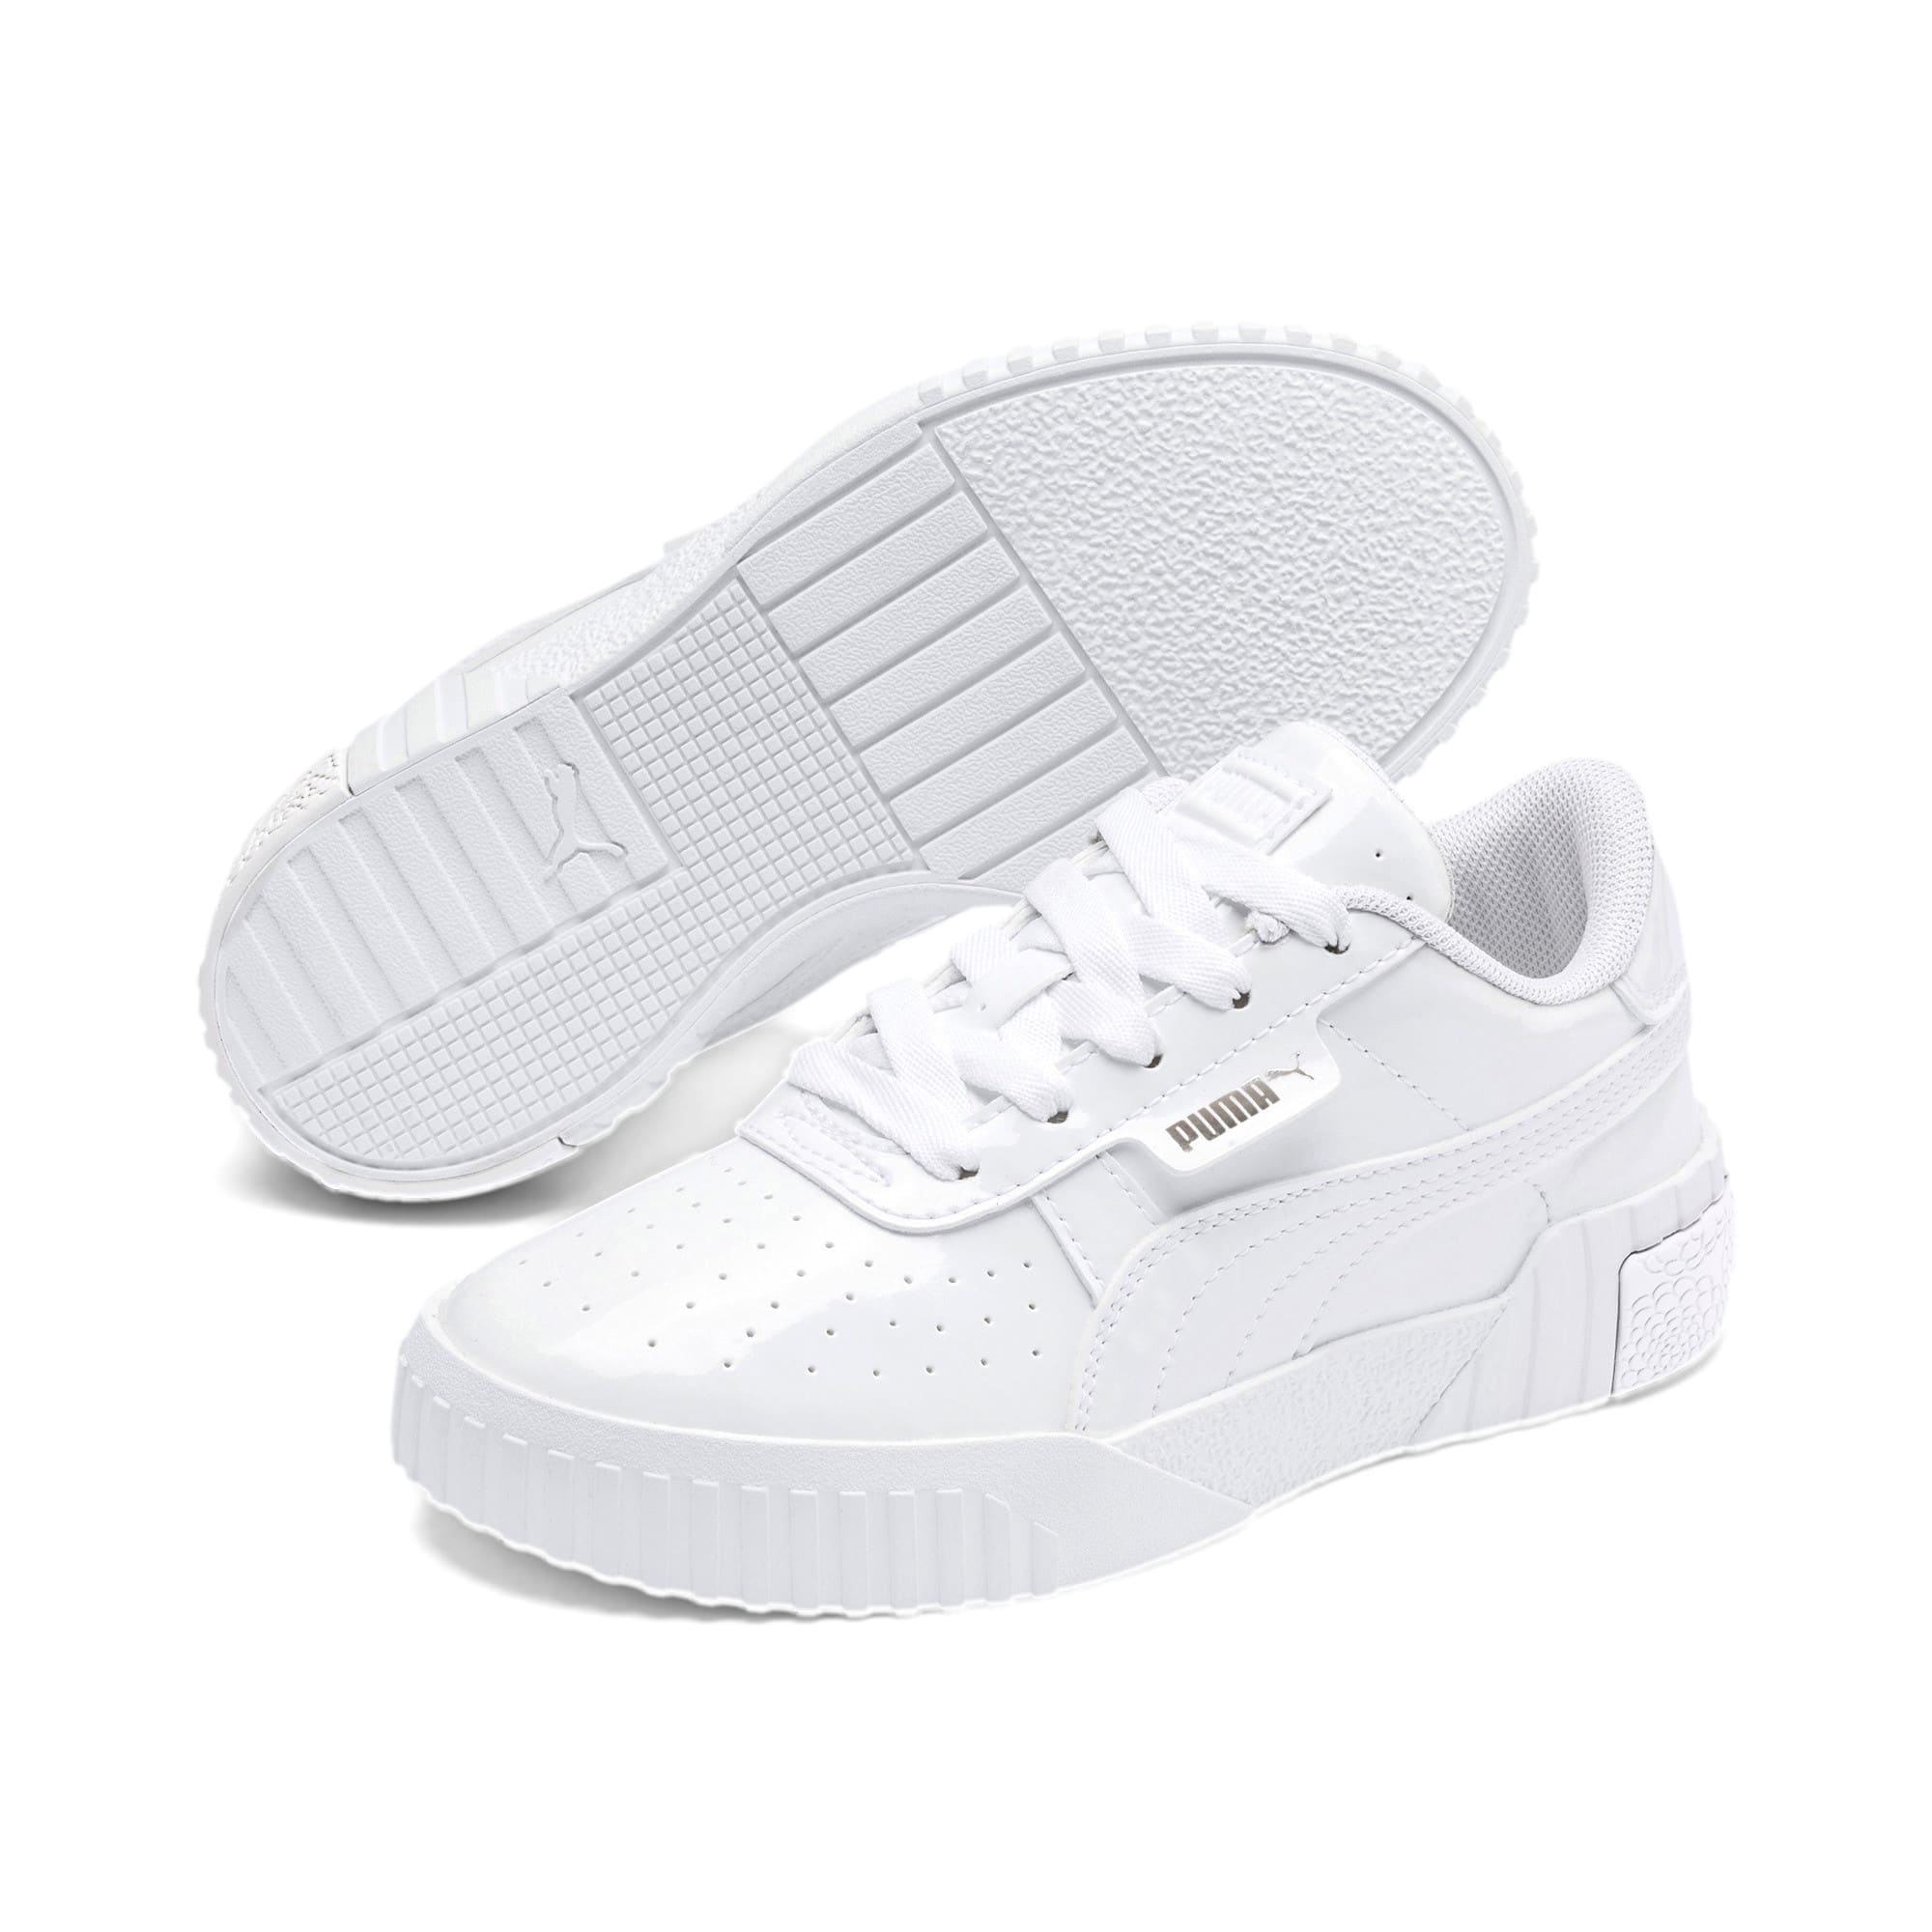 Thumbnail 2 of Cali Patent Kids' Trainers, Puma White-Puma White, medium